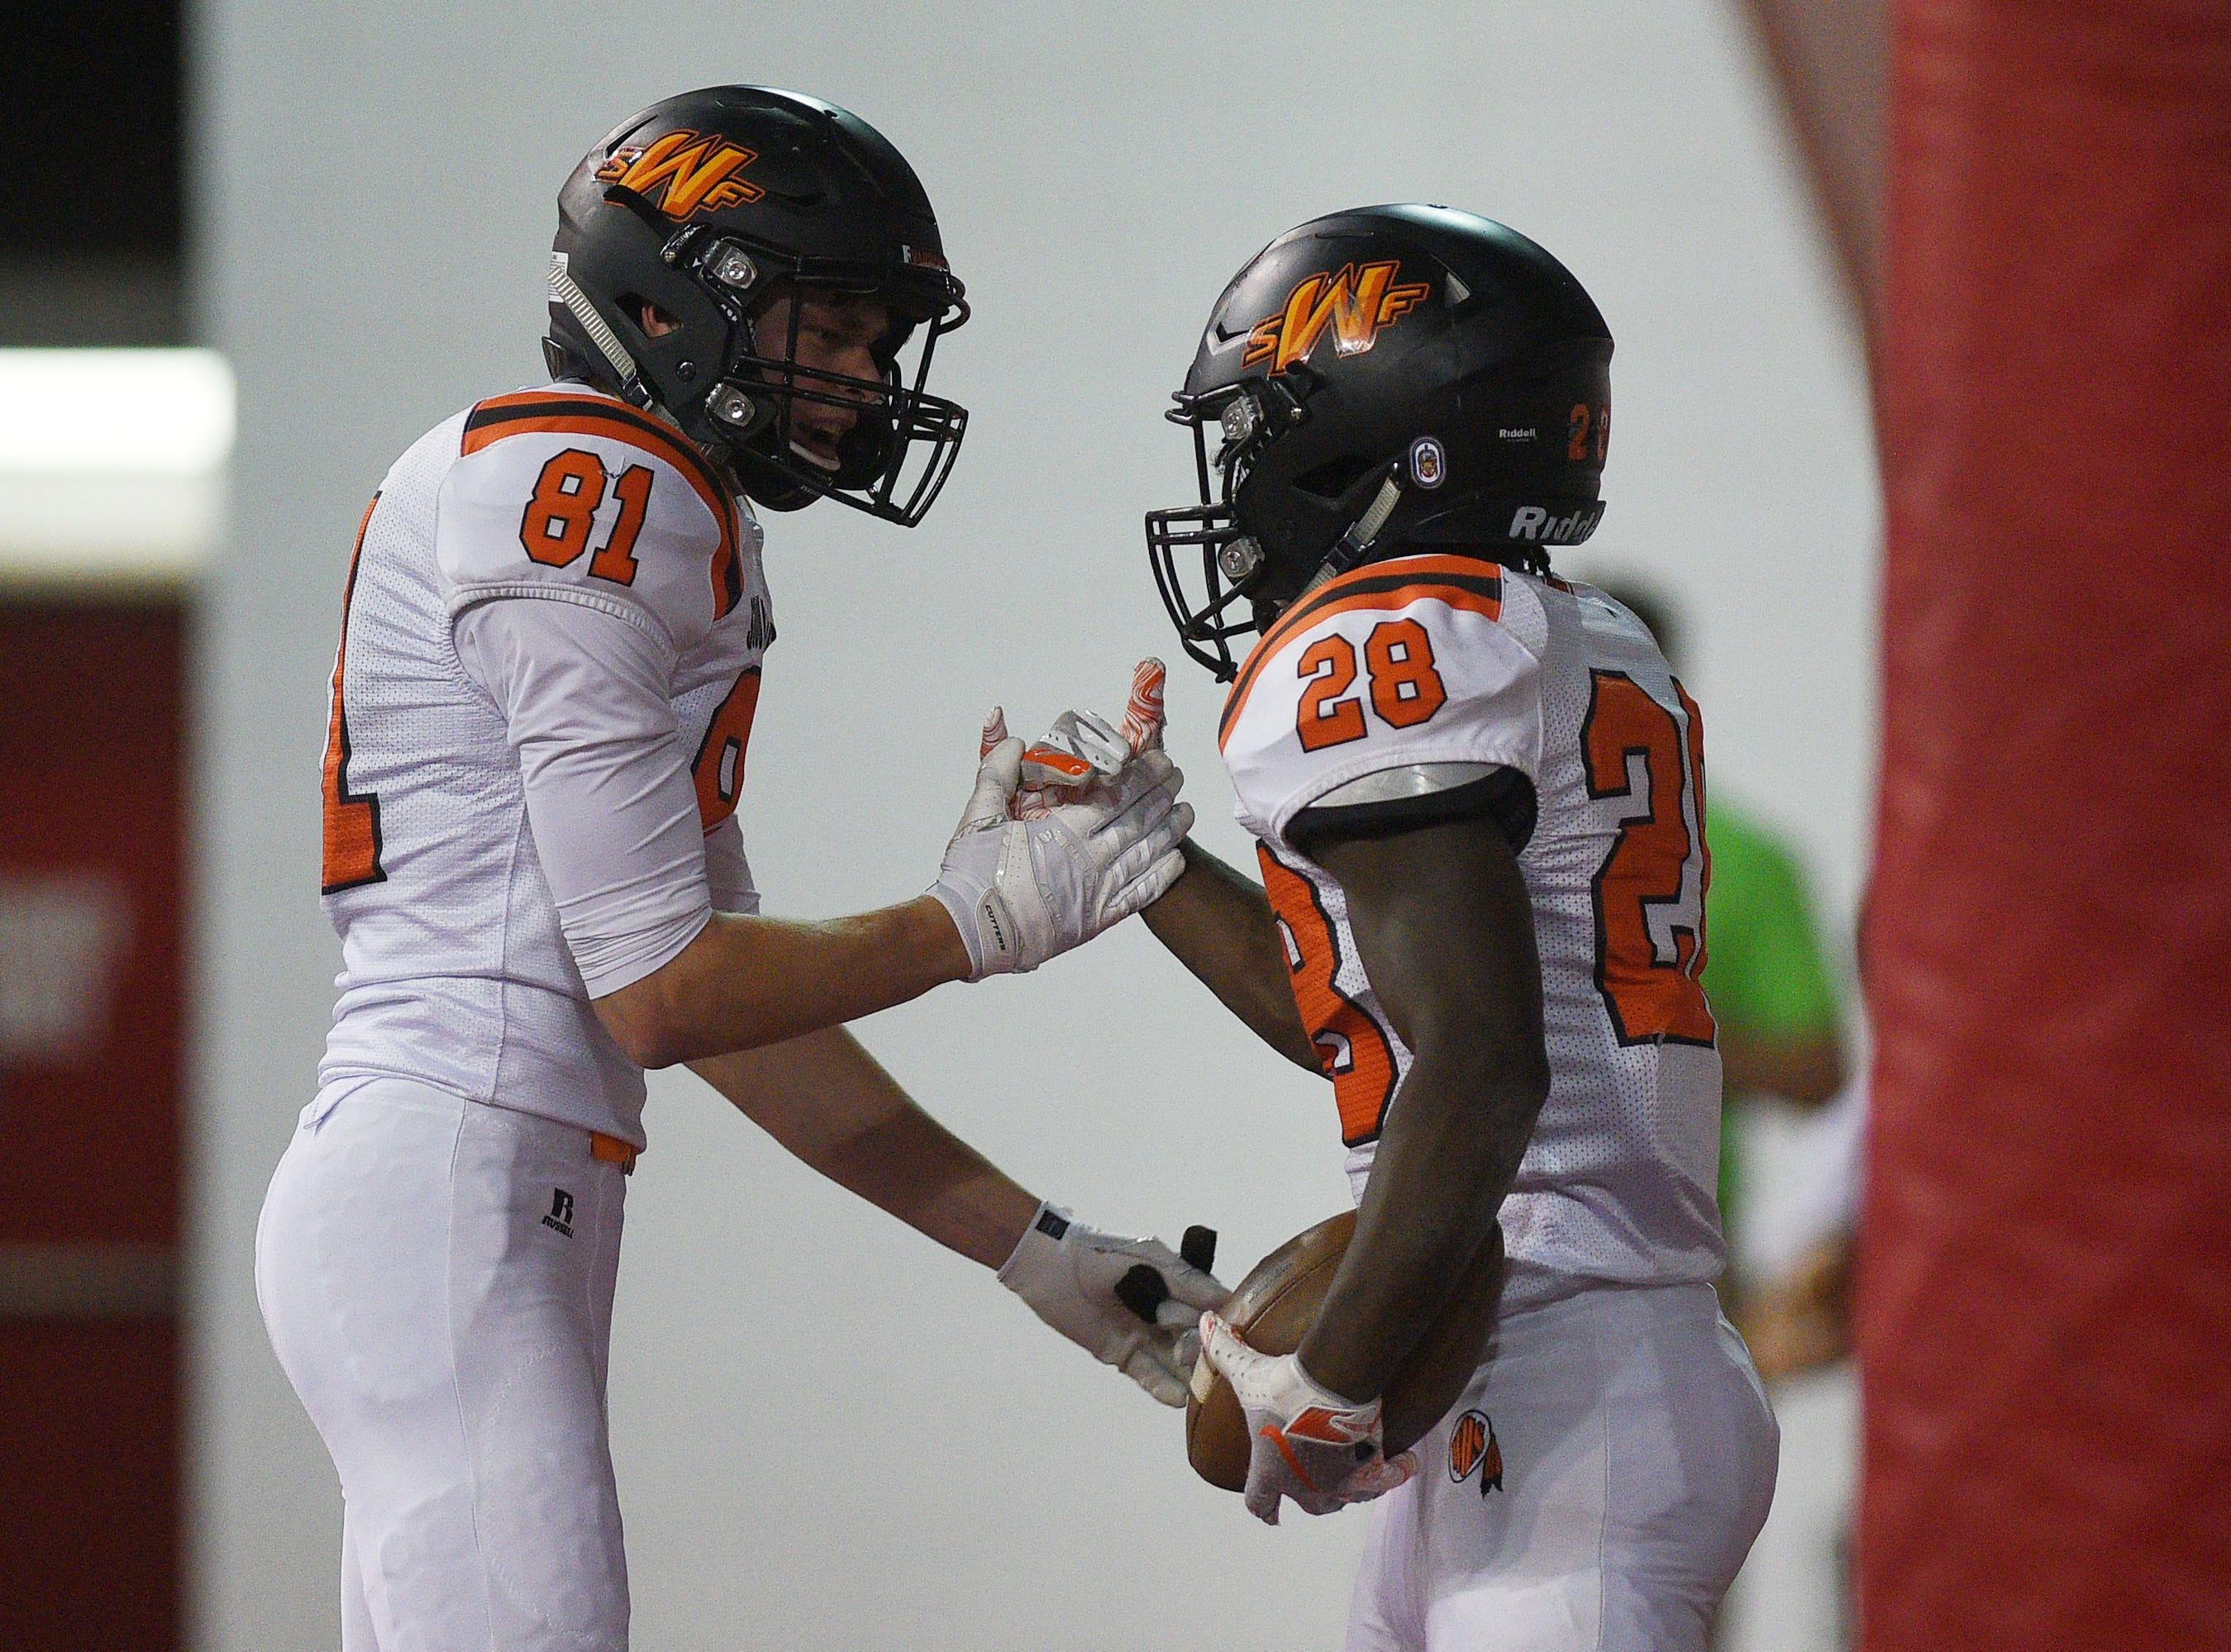 Washington's Gabe Person (81) and Tupak Kpeayeh (28) celebrate in the end zone during the game against Brandon Valley  Saturday, Nov. 10, at the DakotaDome in Vermillion.